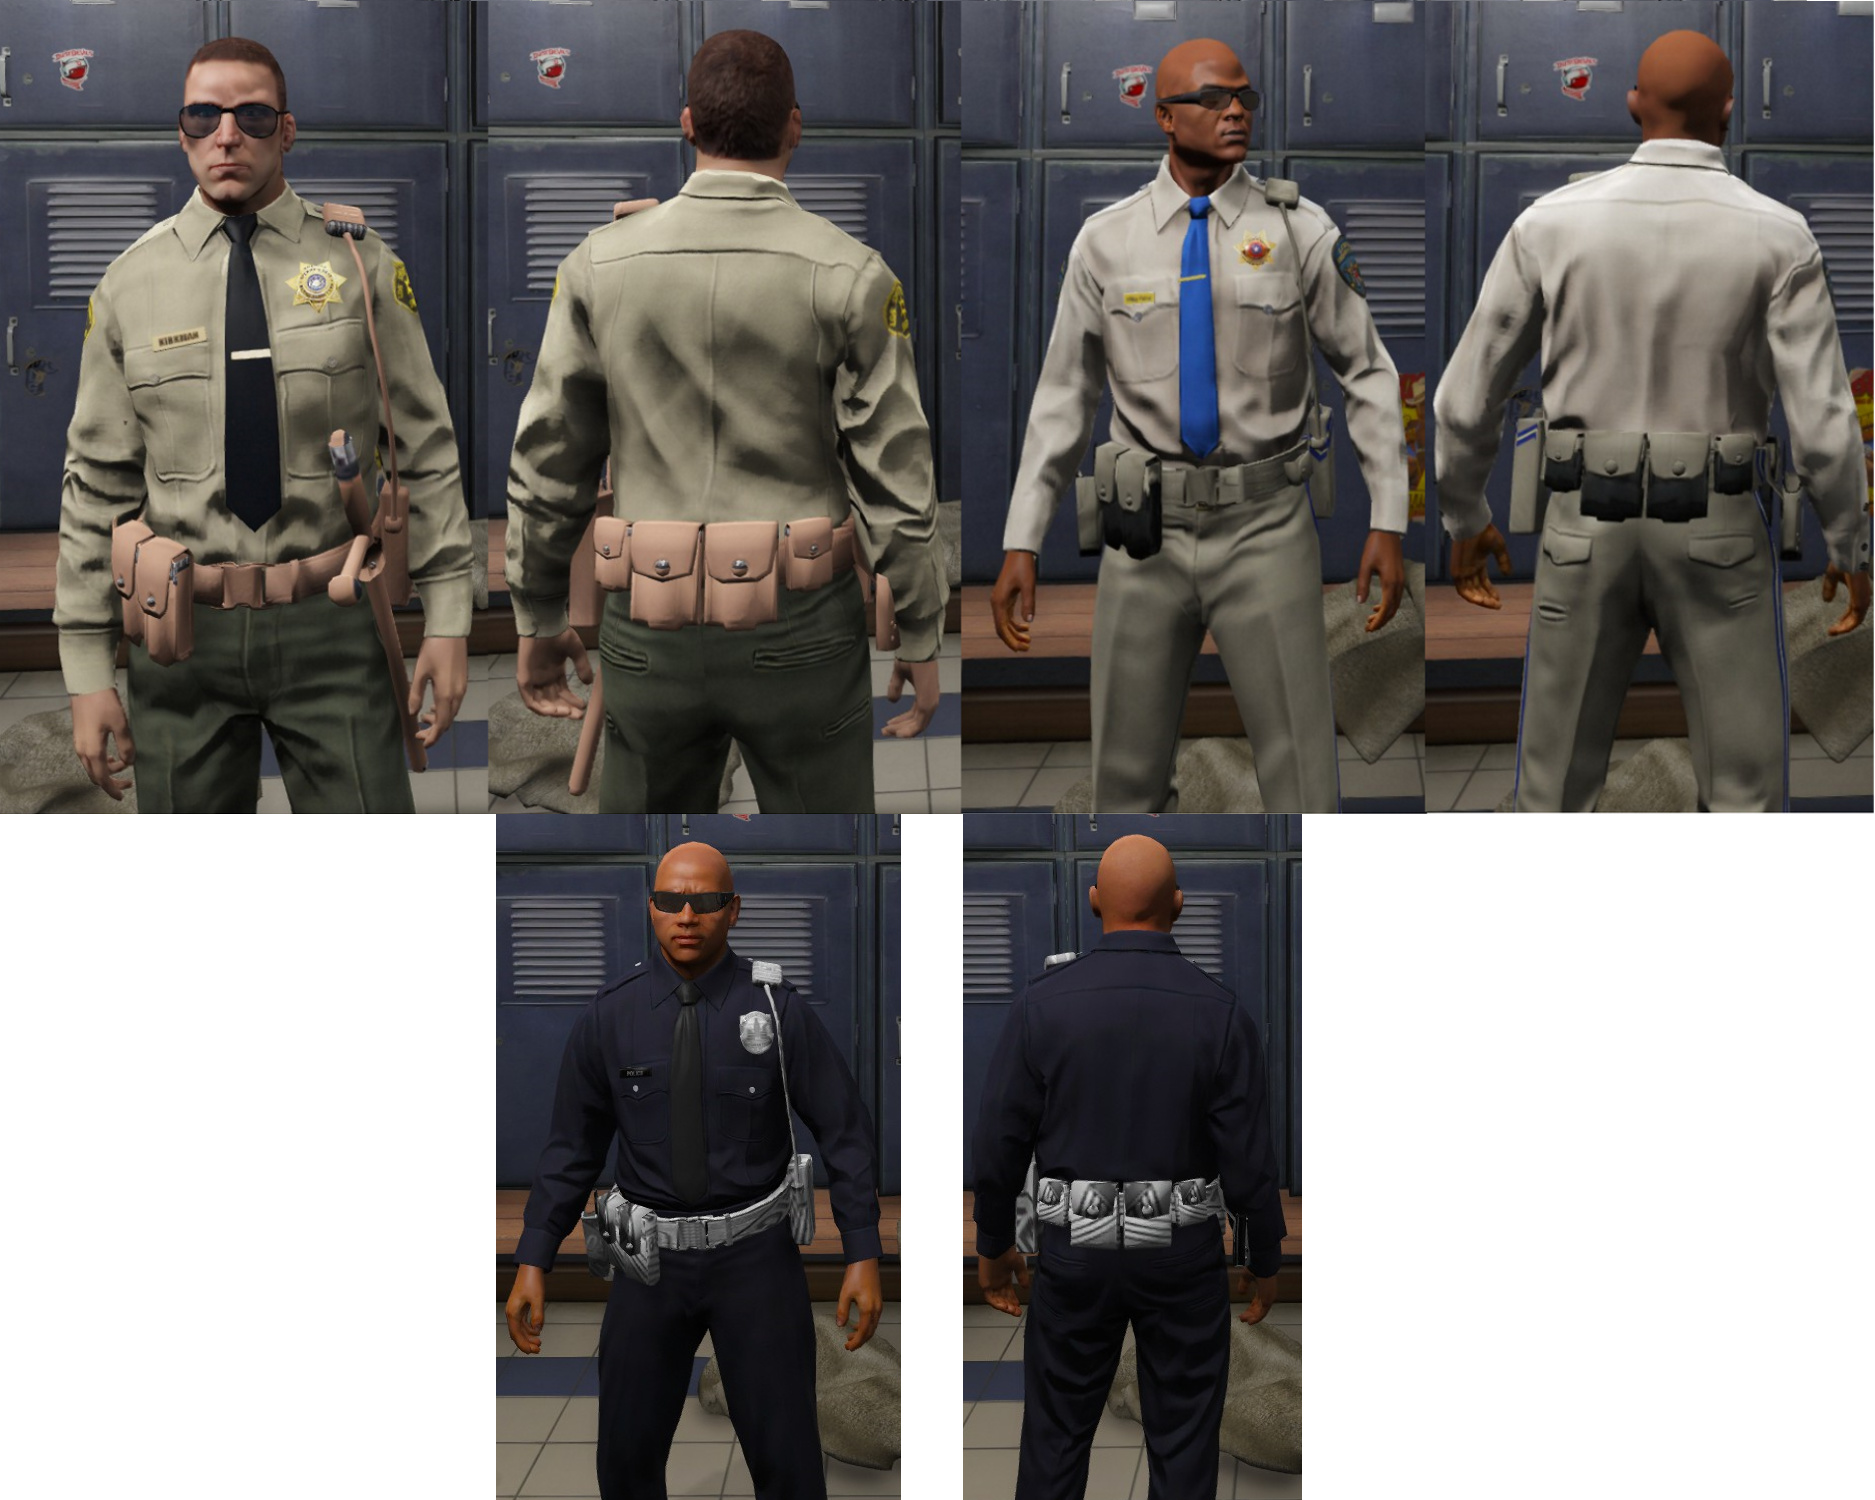 Police Belt texture glitch - Discussion - FiveM